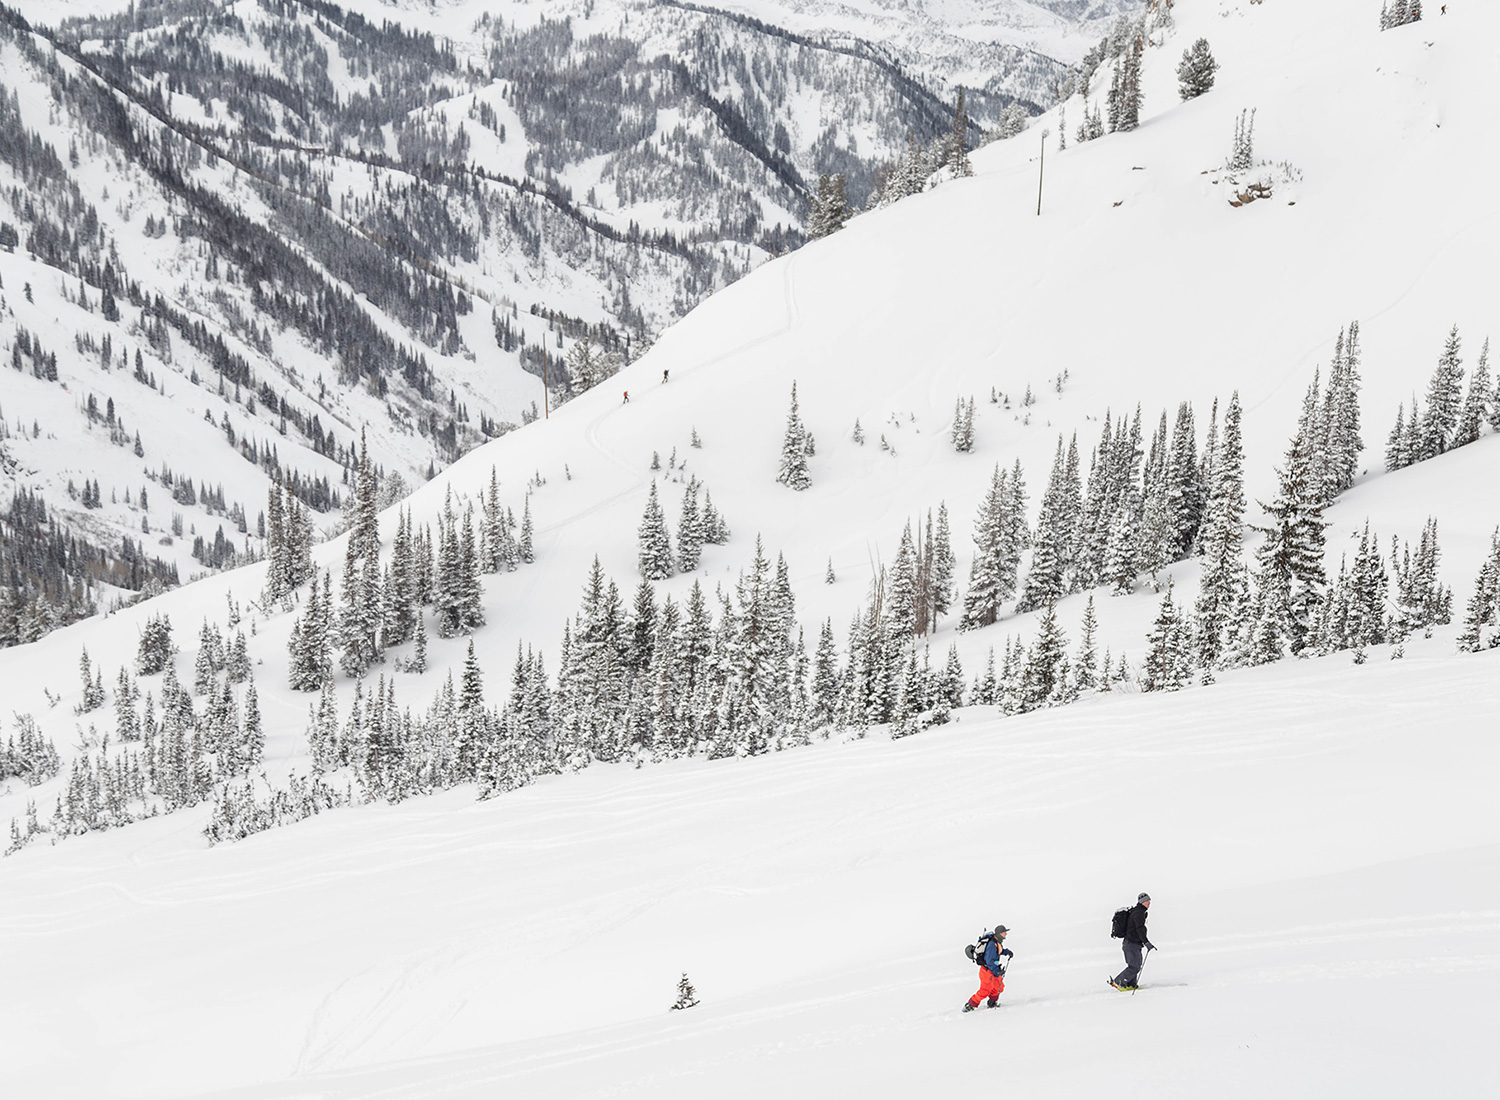 backcountry-skiing-utah-toledo-bowl-approach-pictures.jpg